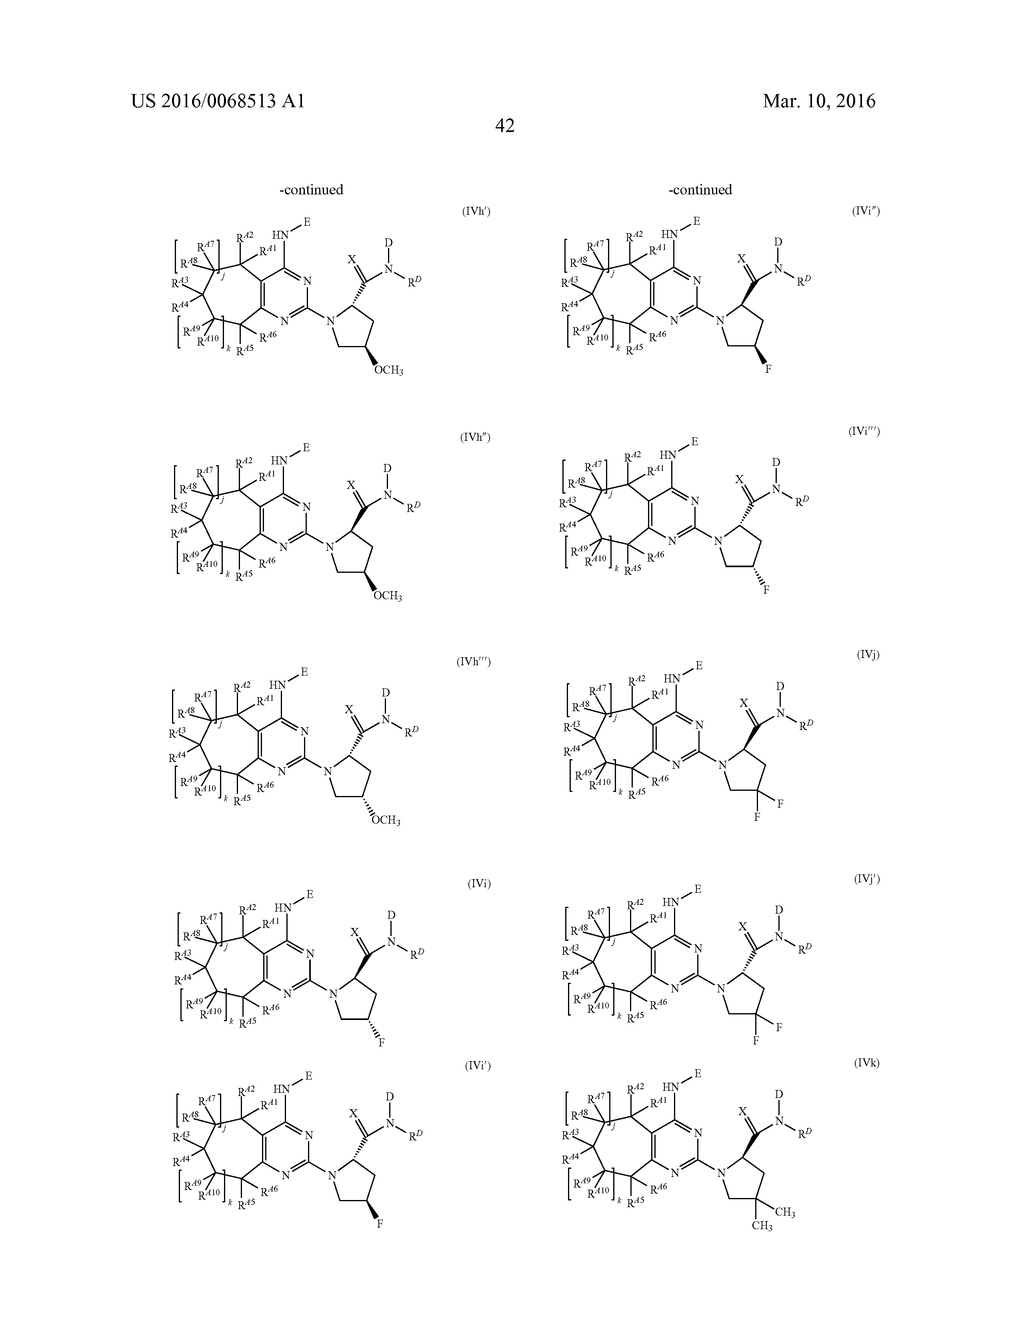 FUSED PYRIMIDINE COMPOUNDS AND USE THEREOF - diagram, schematic, and image 47